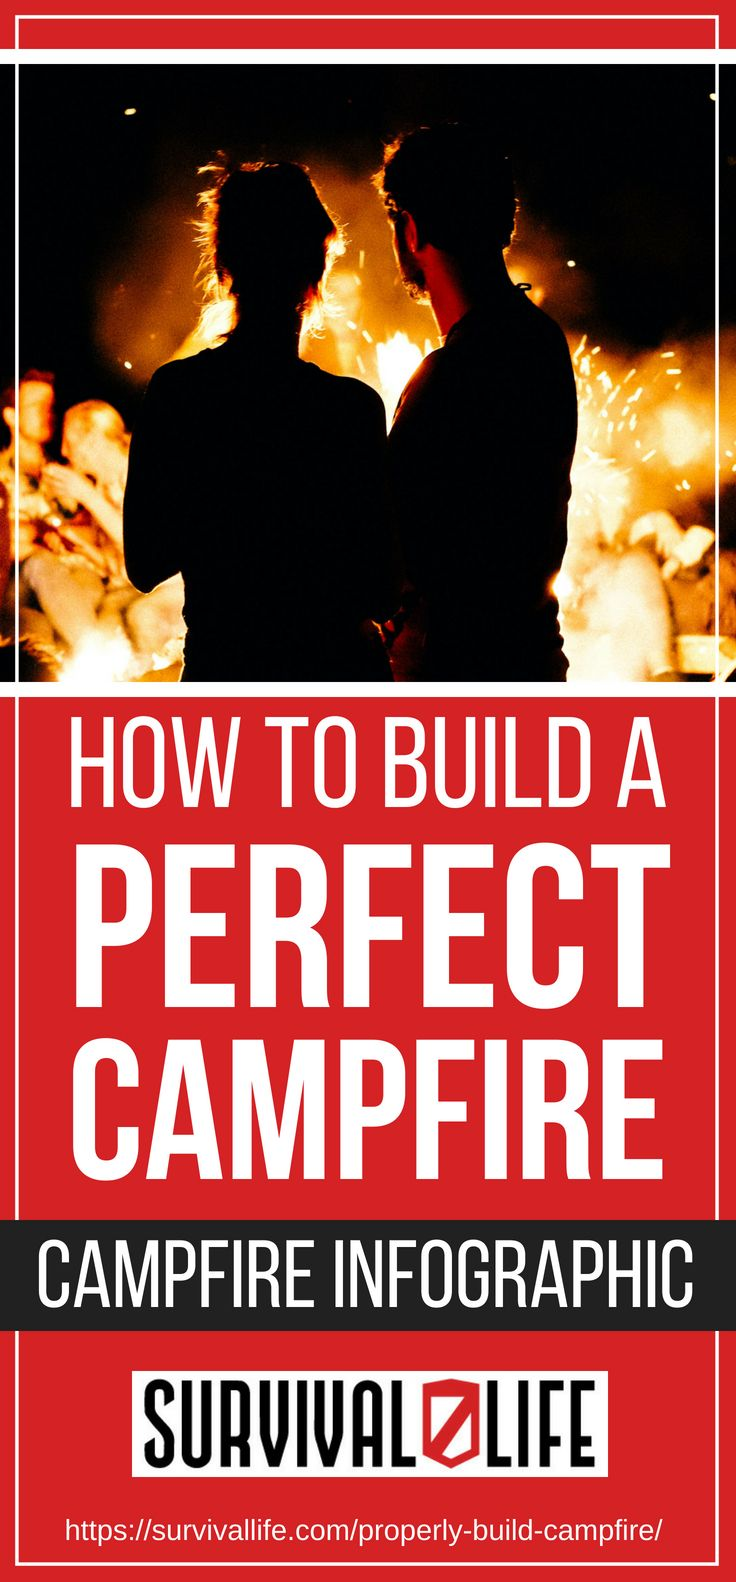 Placard   Campfire Infographic   How To Build The Perfect Campfire